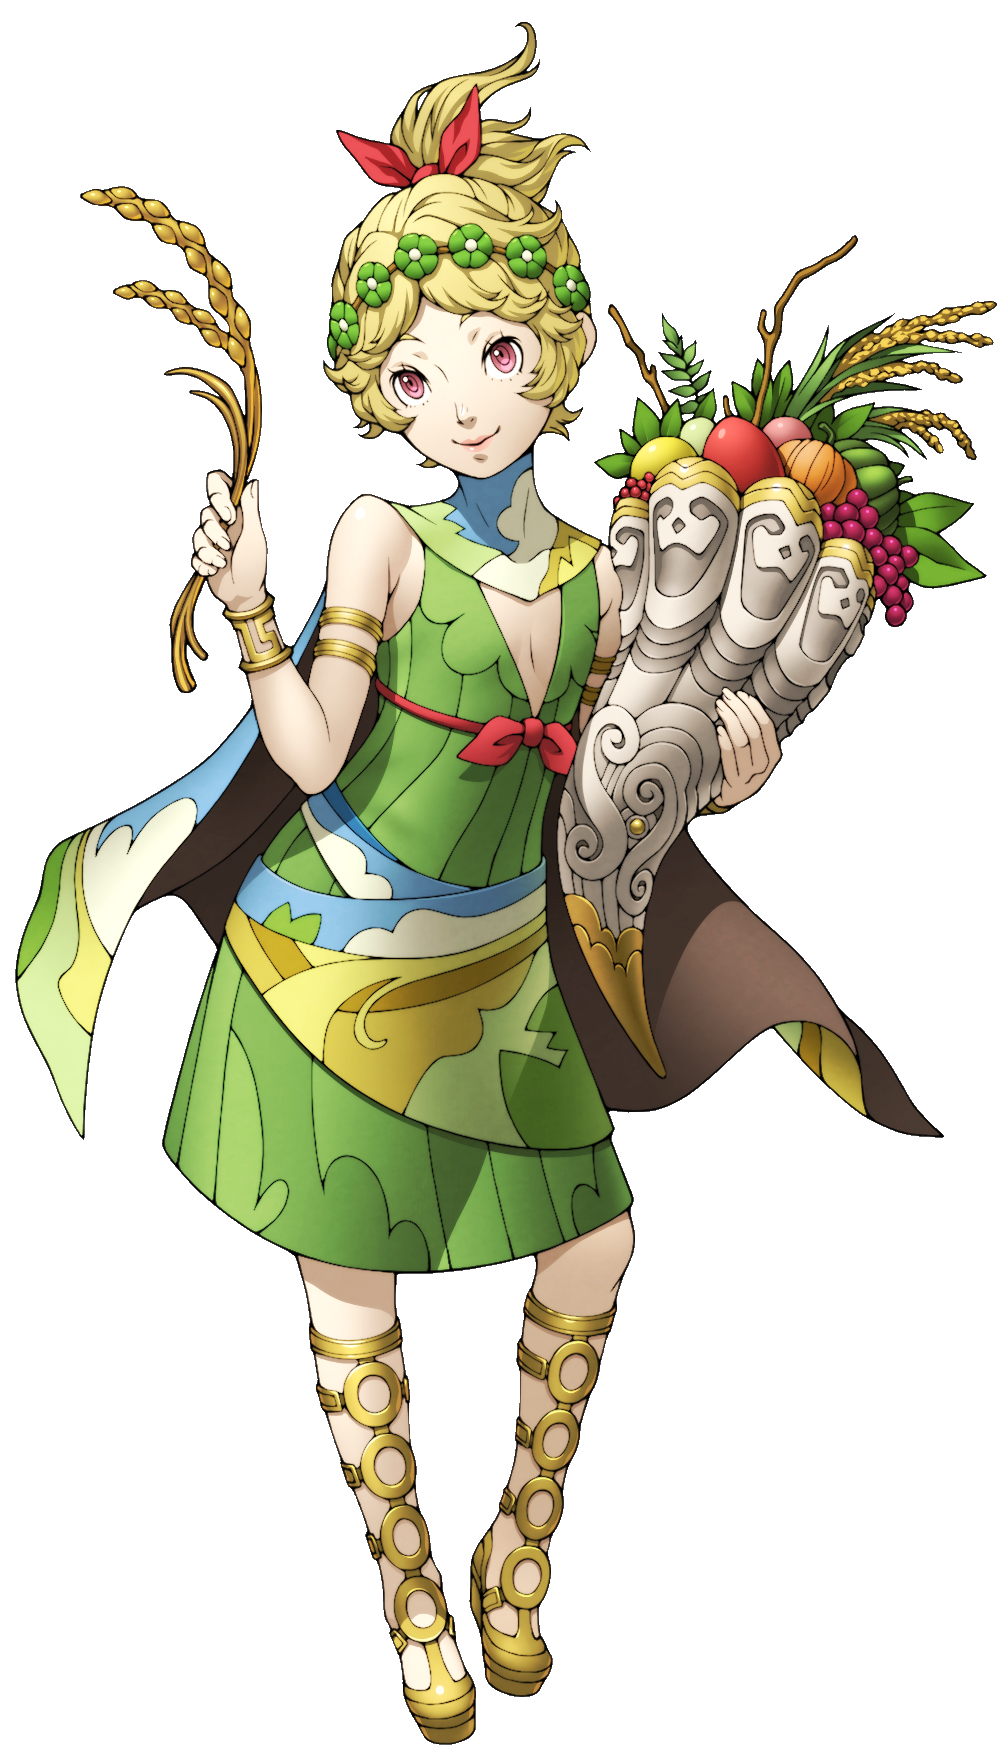 Demeter megami tensei wiki fandom powered by wikia demeters design in shin megami tensei strange journey redux buycottarizona Image collections